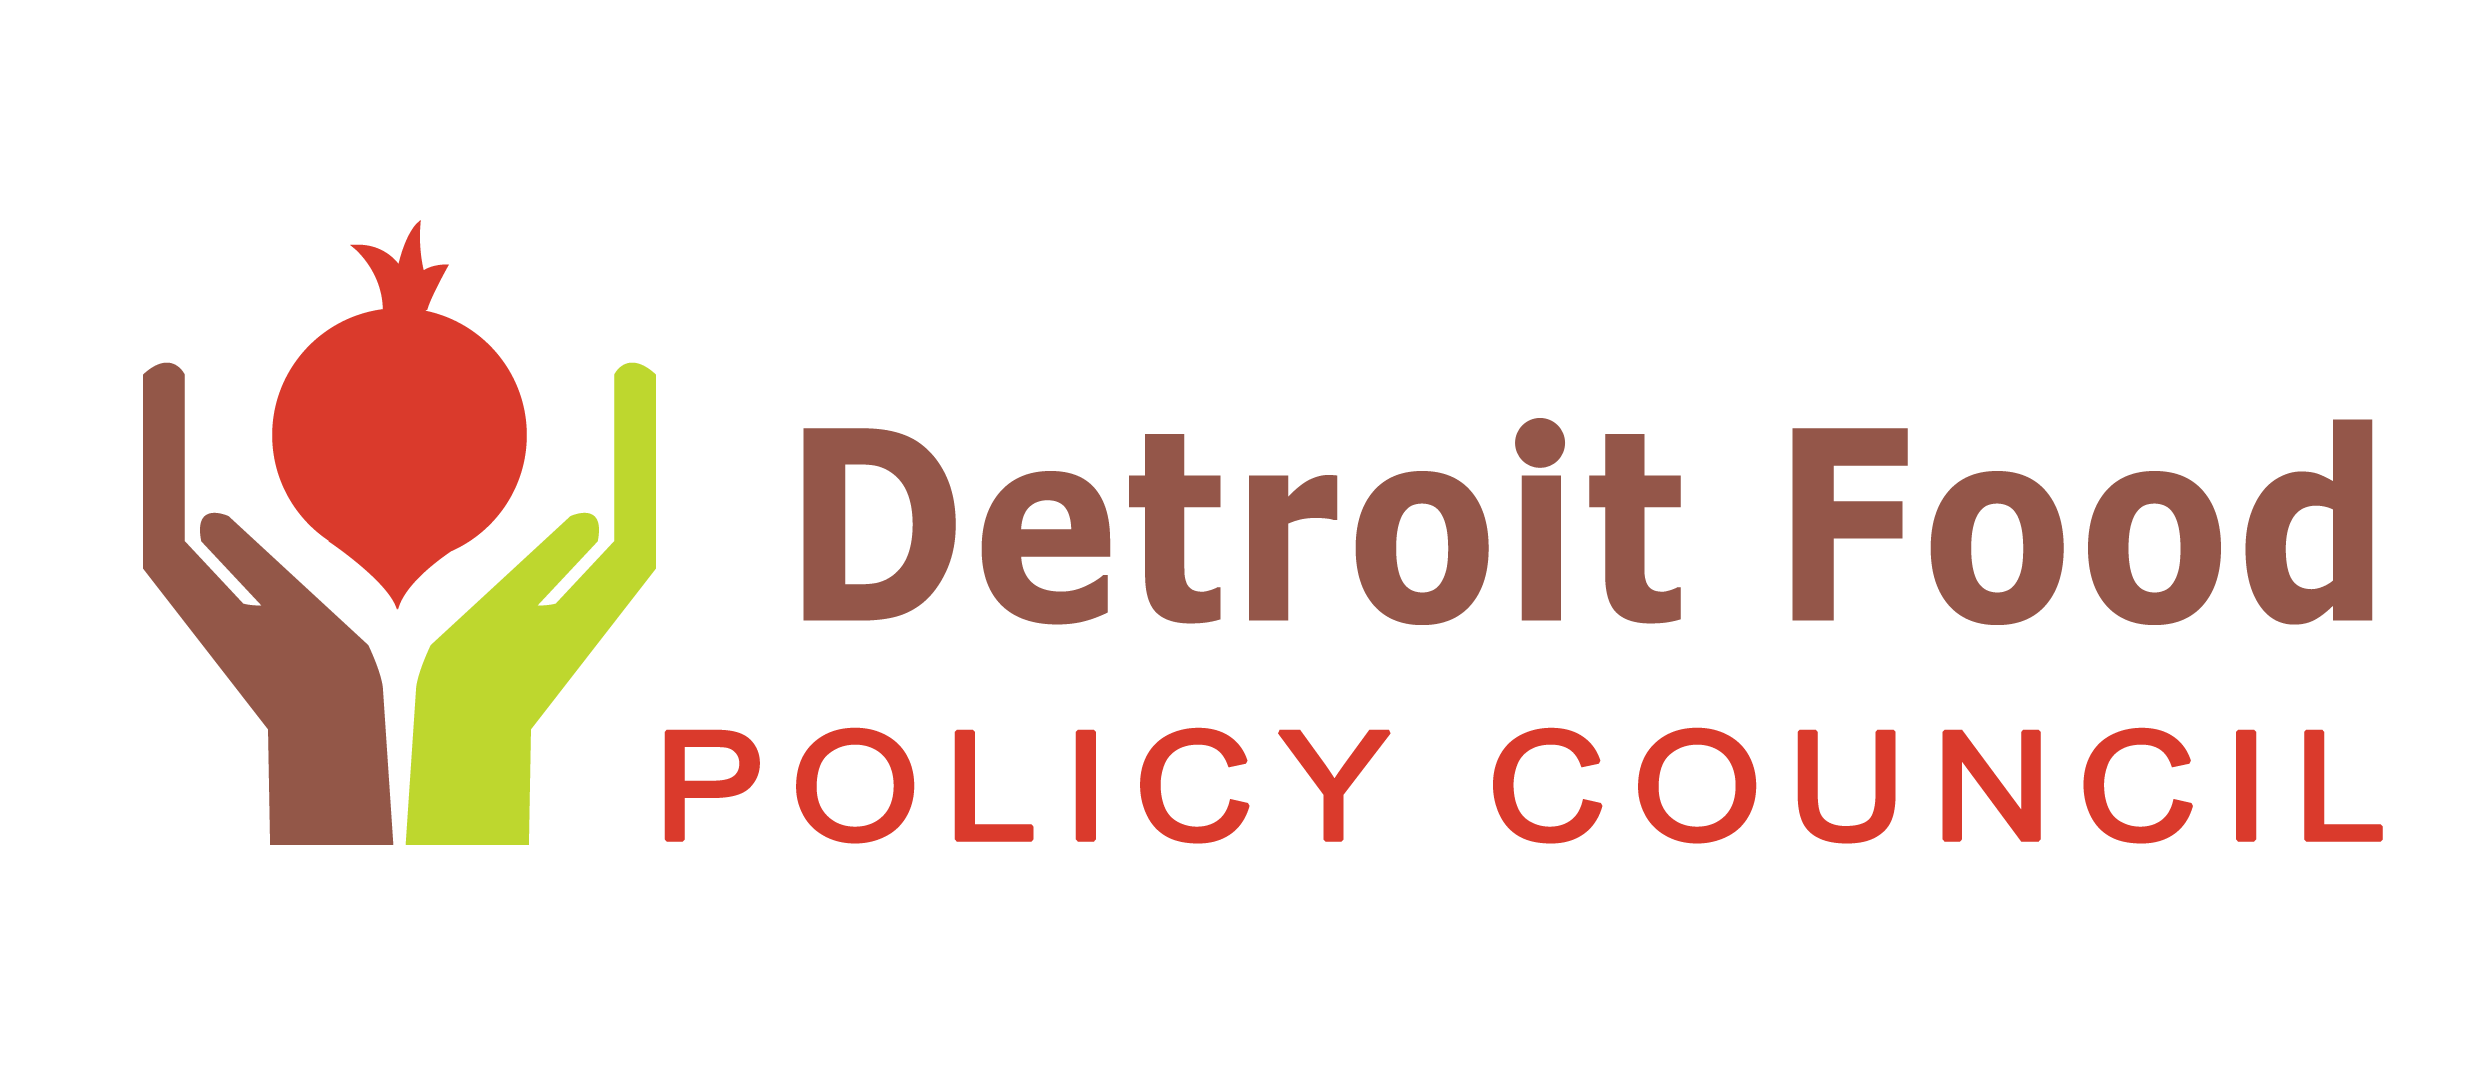 Detroit Food Policy Council logo